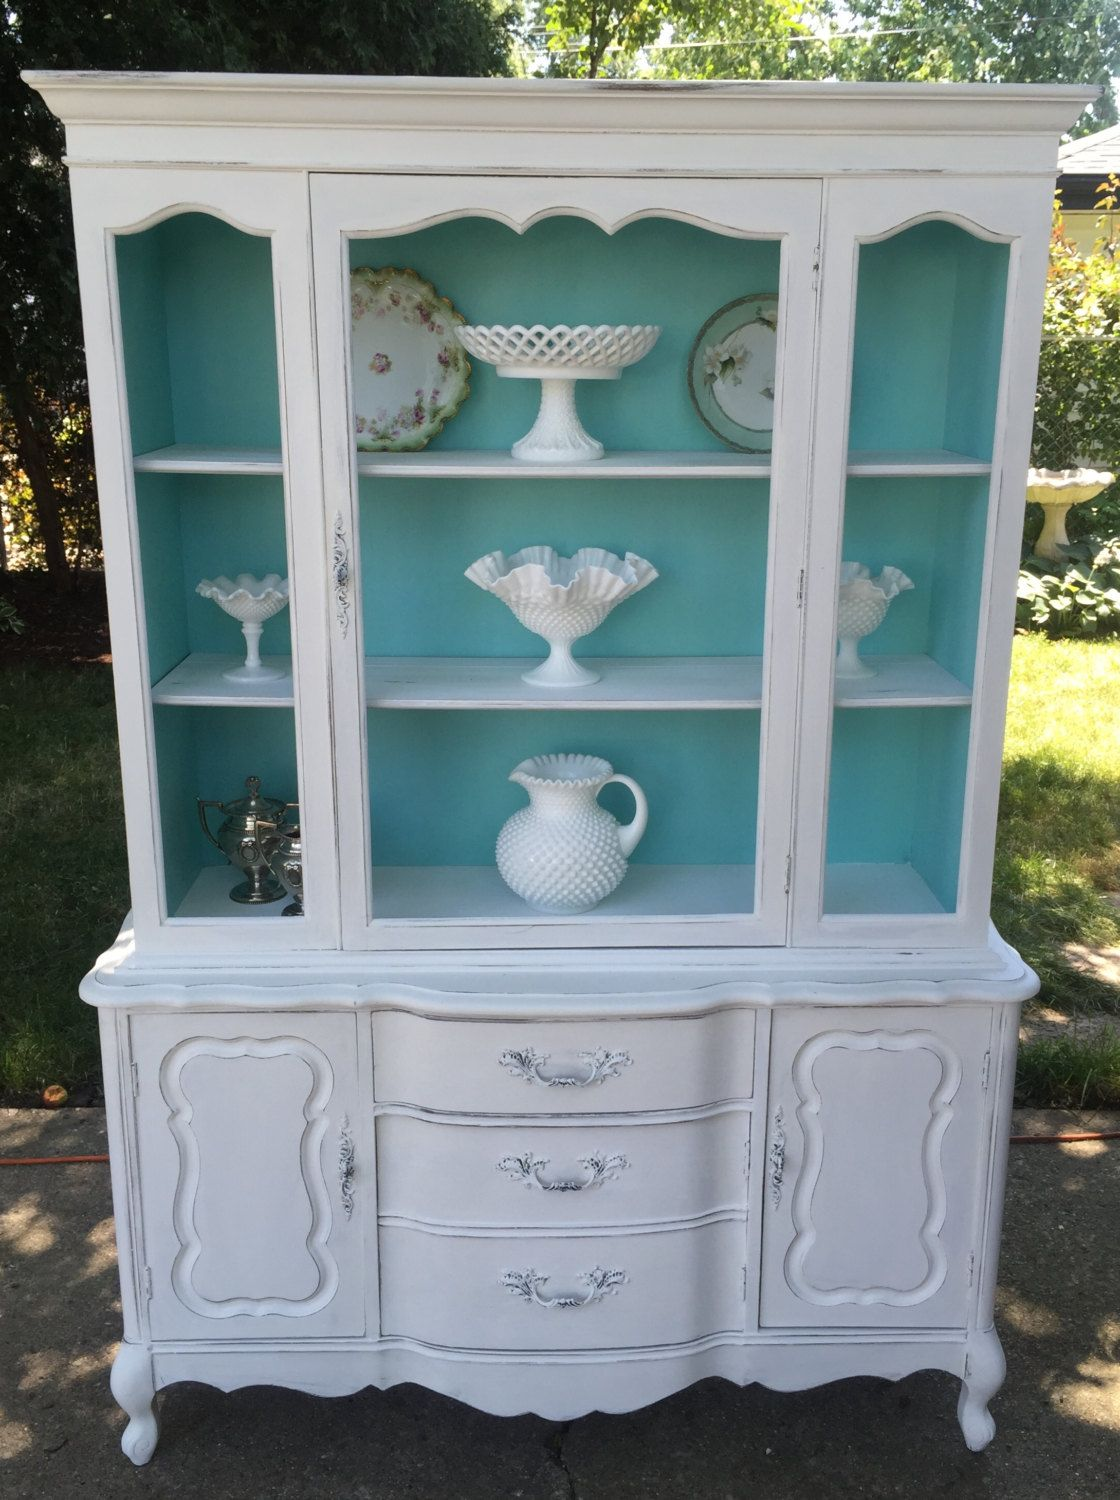 Beautiful Vintage Shabby Chic China Cabinet Cottage Style Storage Display Cabinet Hand Painted Chic Furniture Furniture Makeover Shabby Chic Furniture